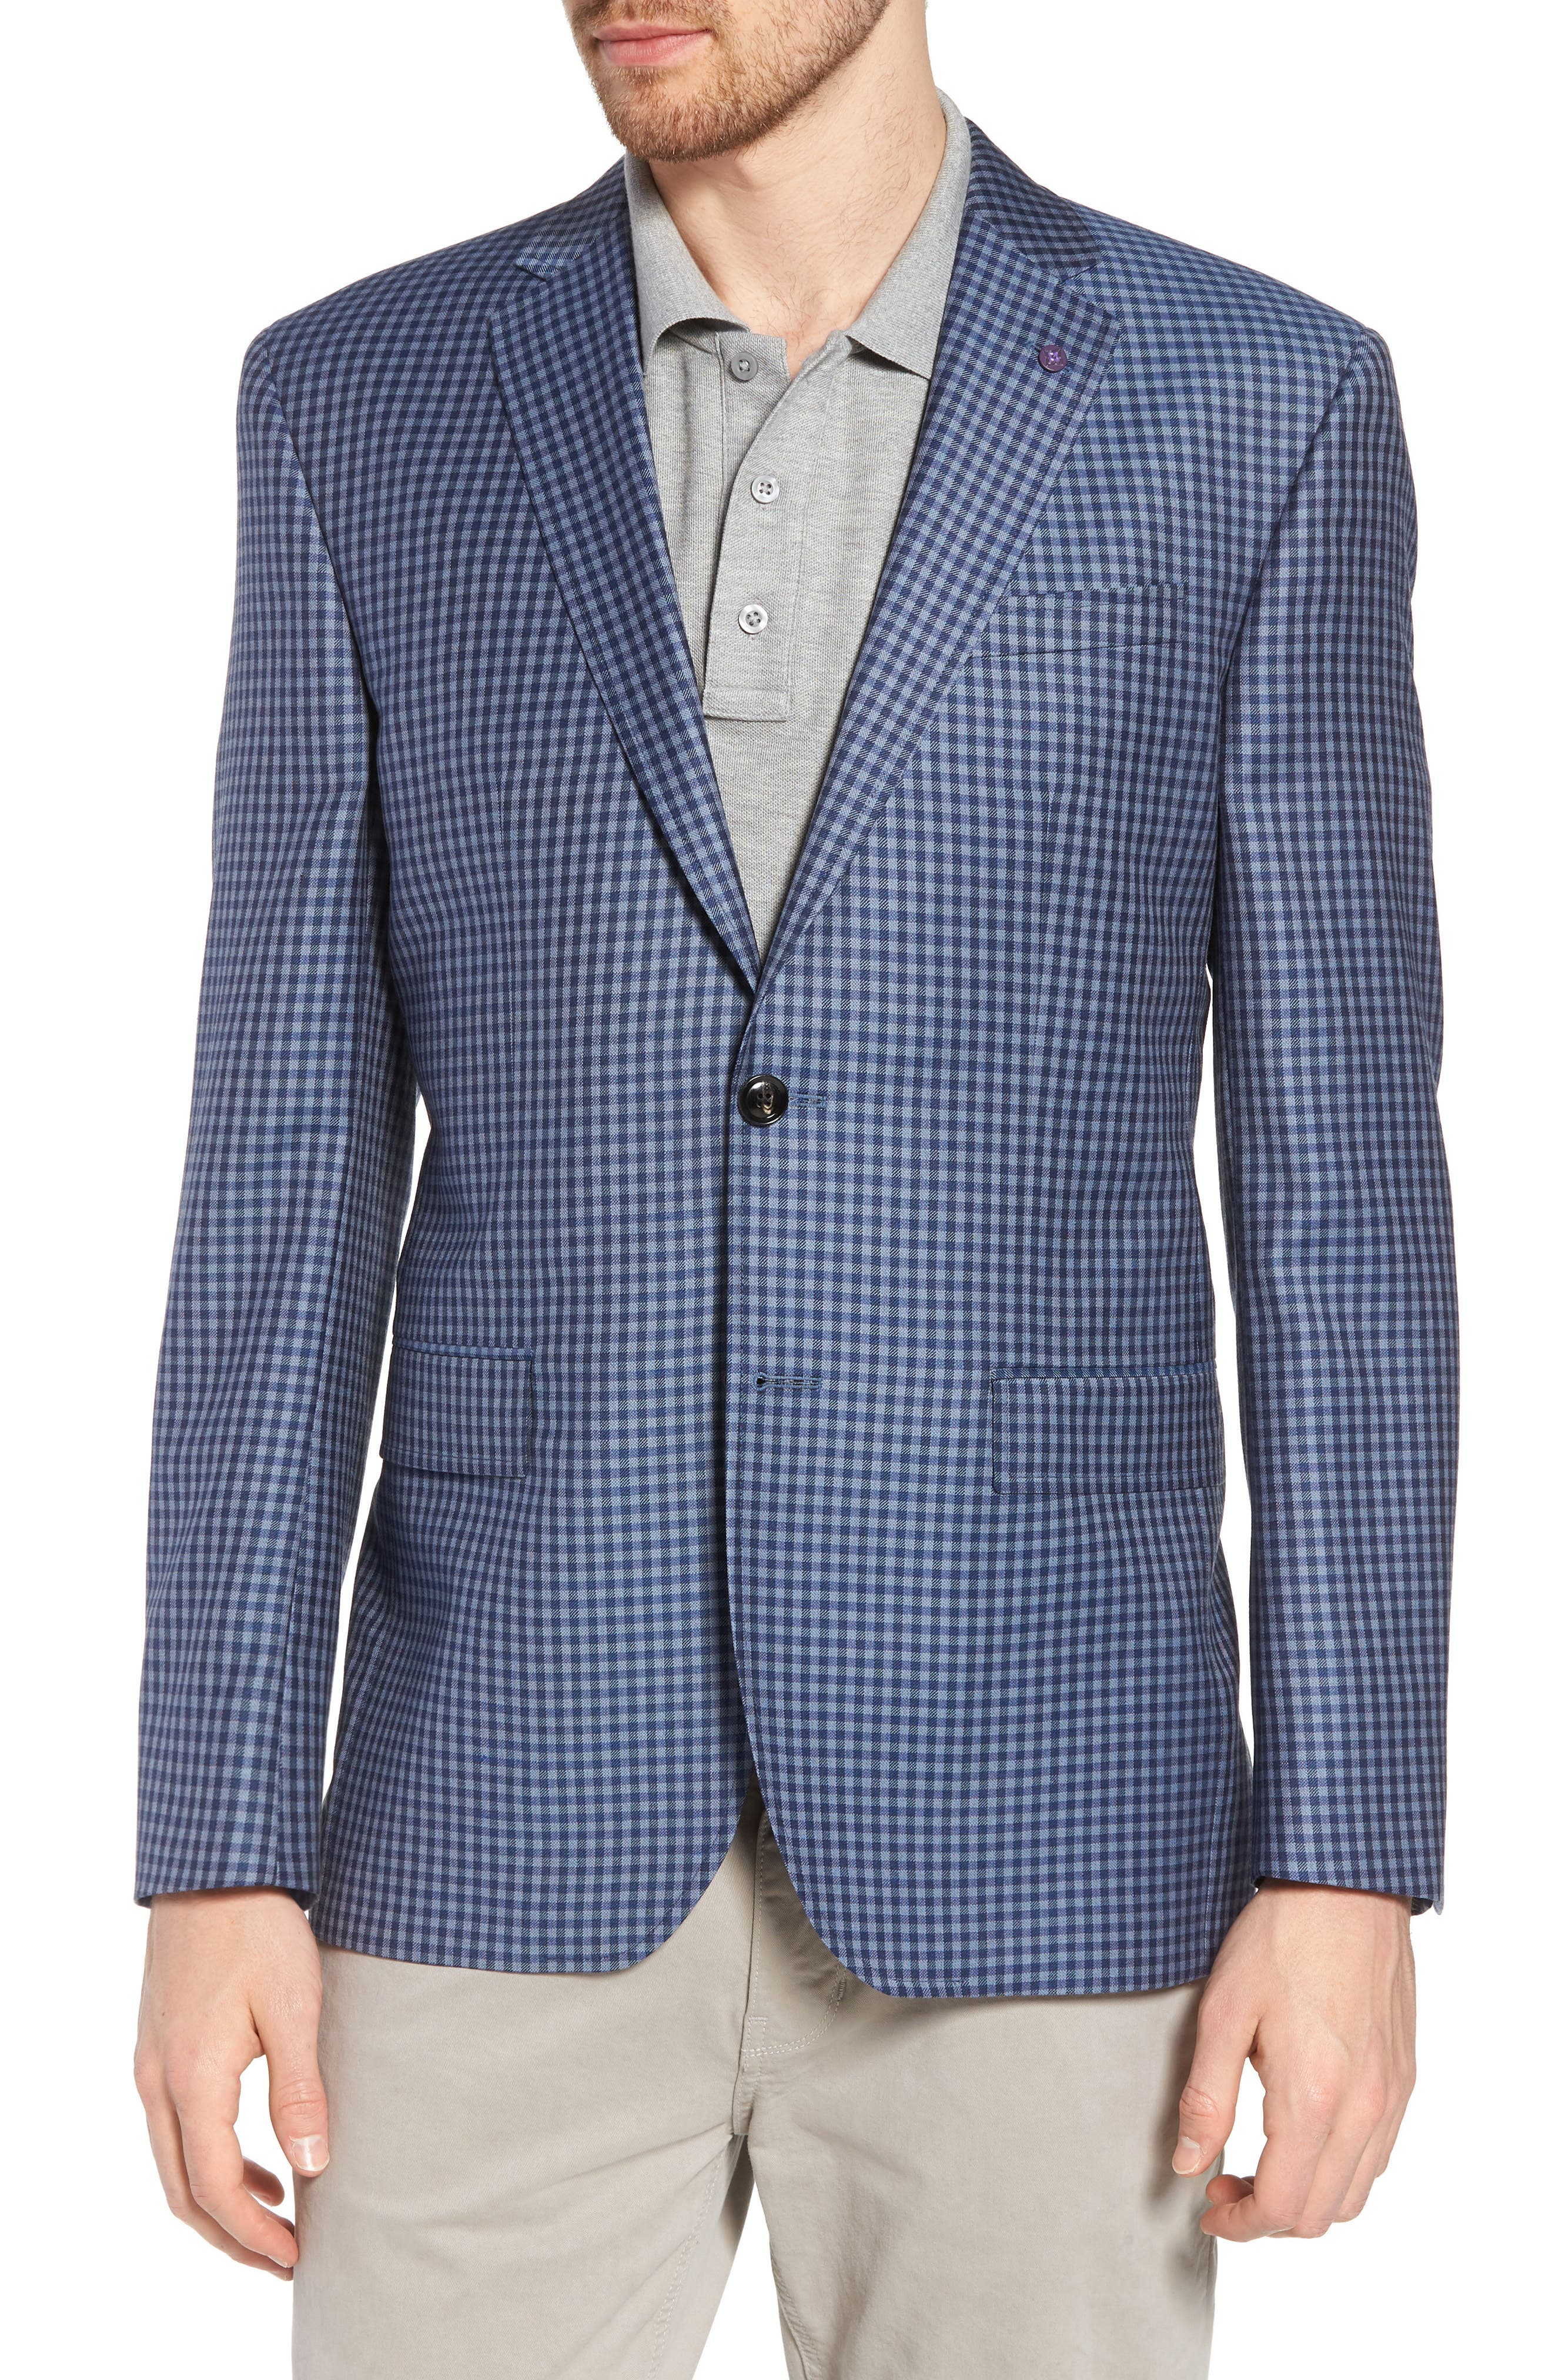 Jay Trim Fit Check Wool Sport Coat,                         Main,                         color, Blue